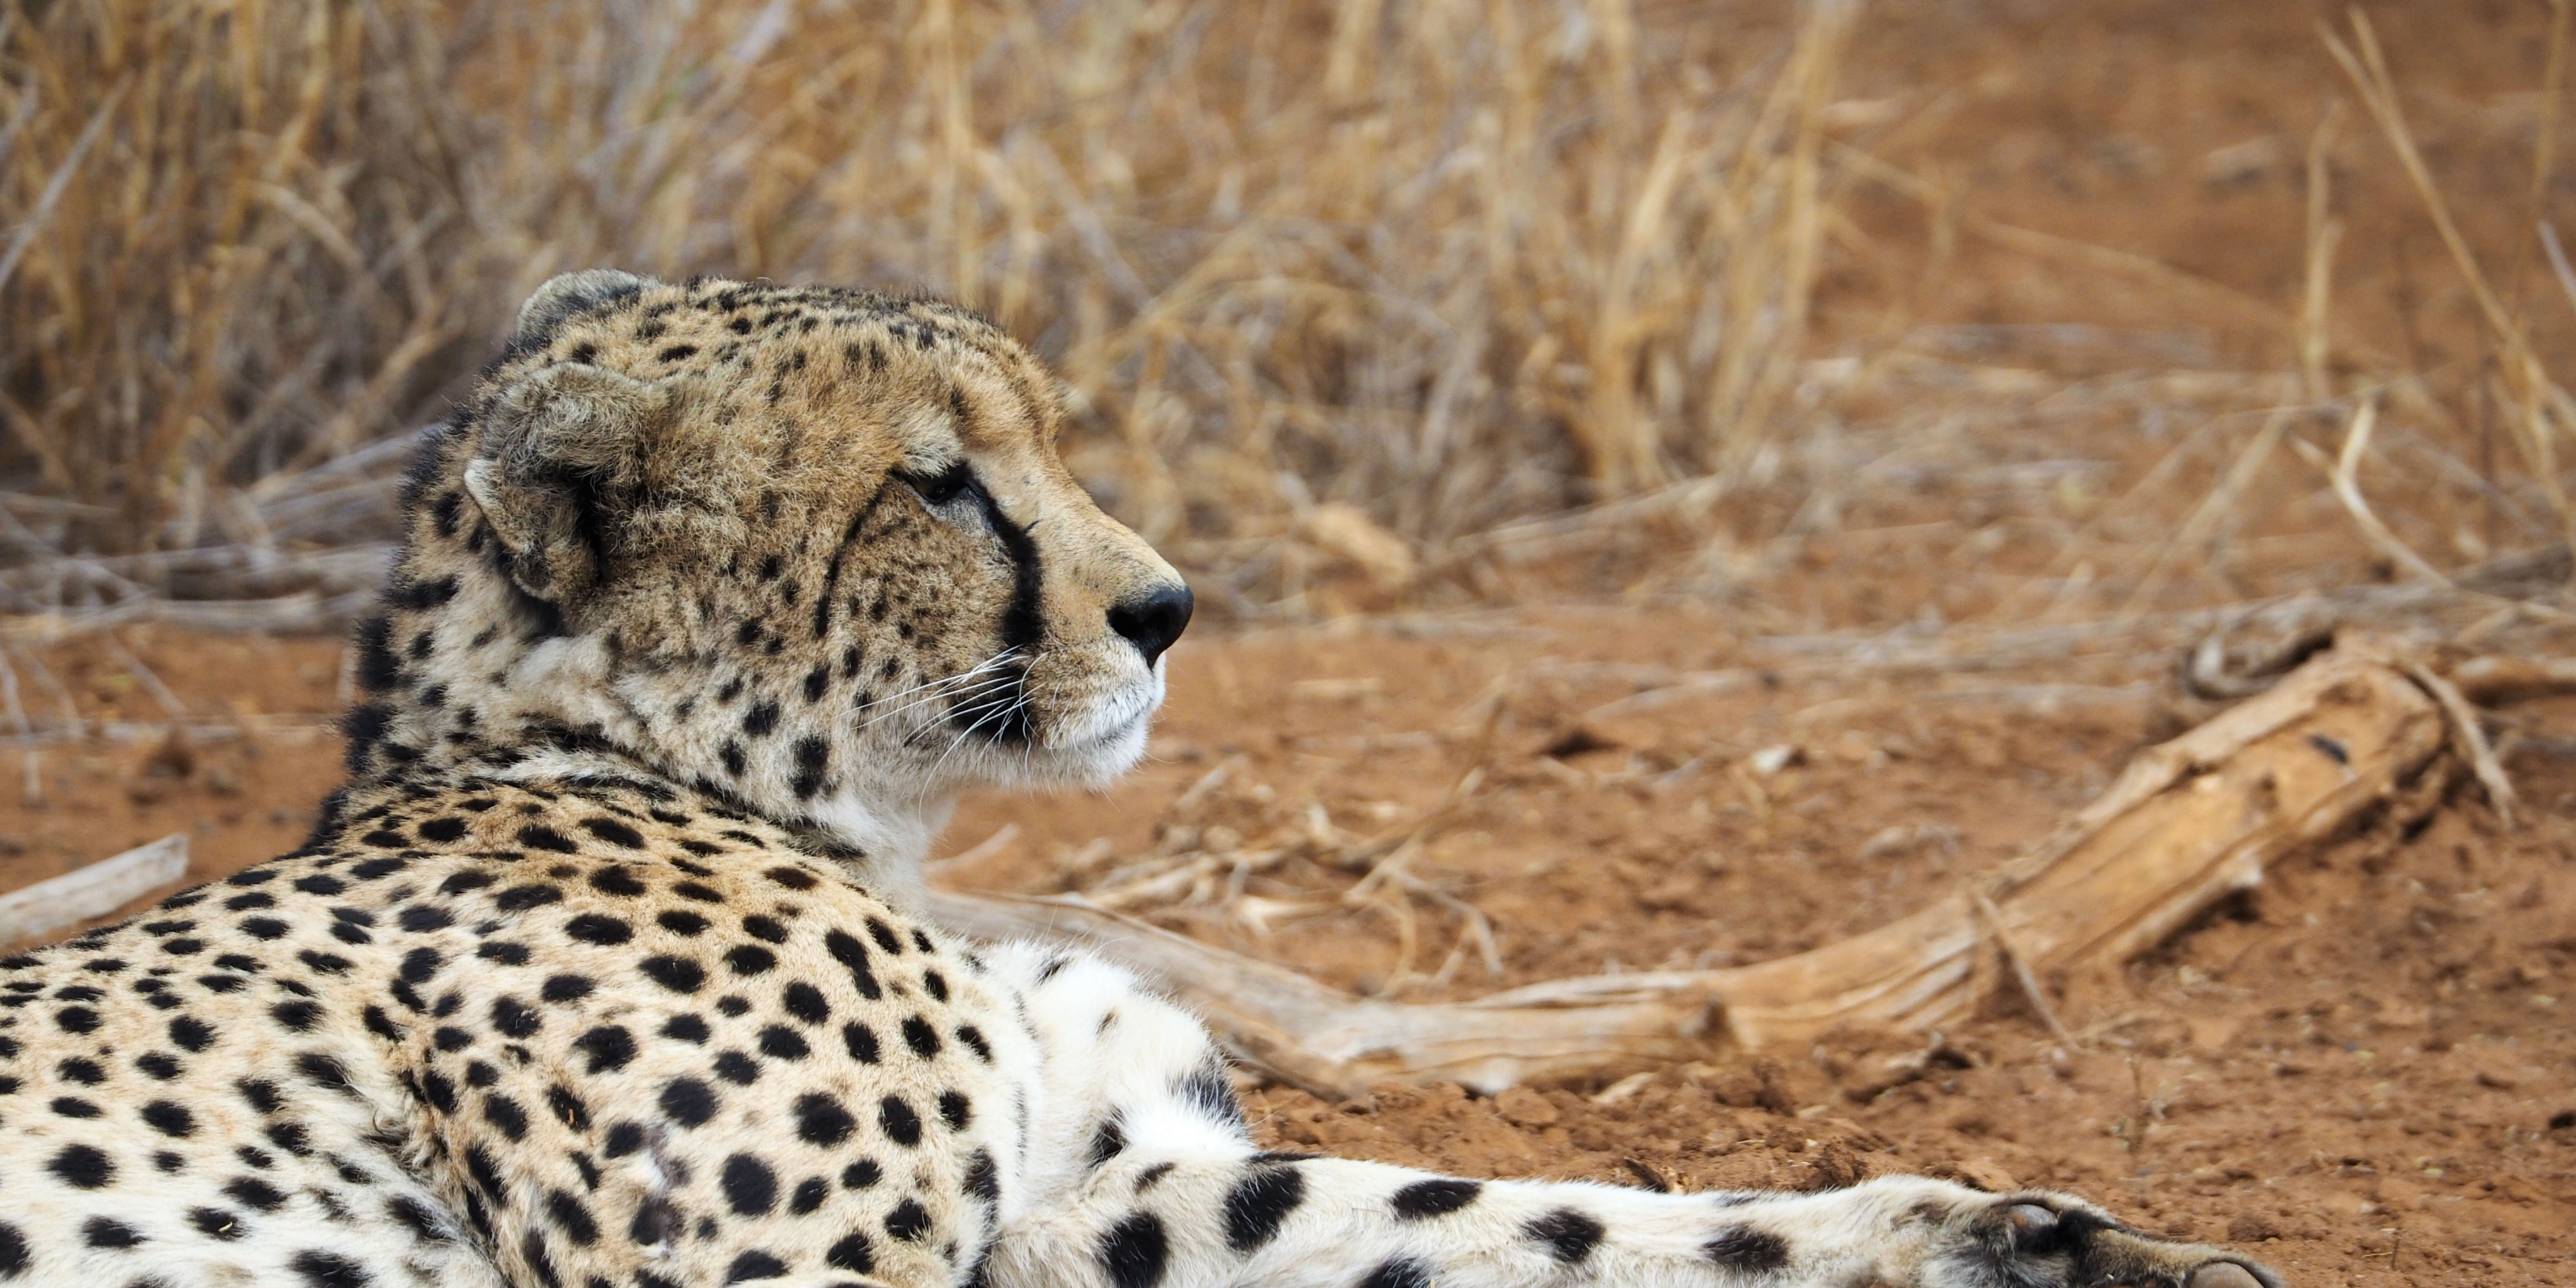 A cheetah lounges on the ground. While volunteering with animals in Africa with animals, GVI participants might be lucky enough to spot on of the reserve's cheetah.